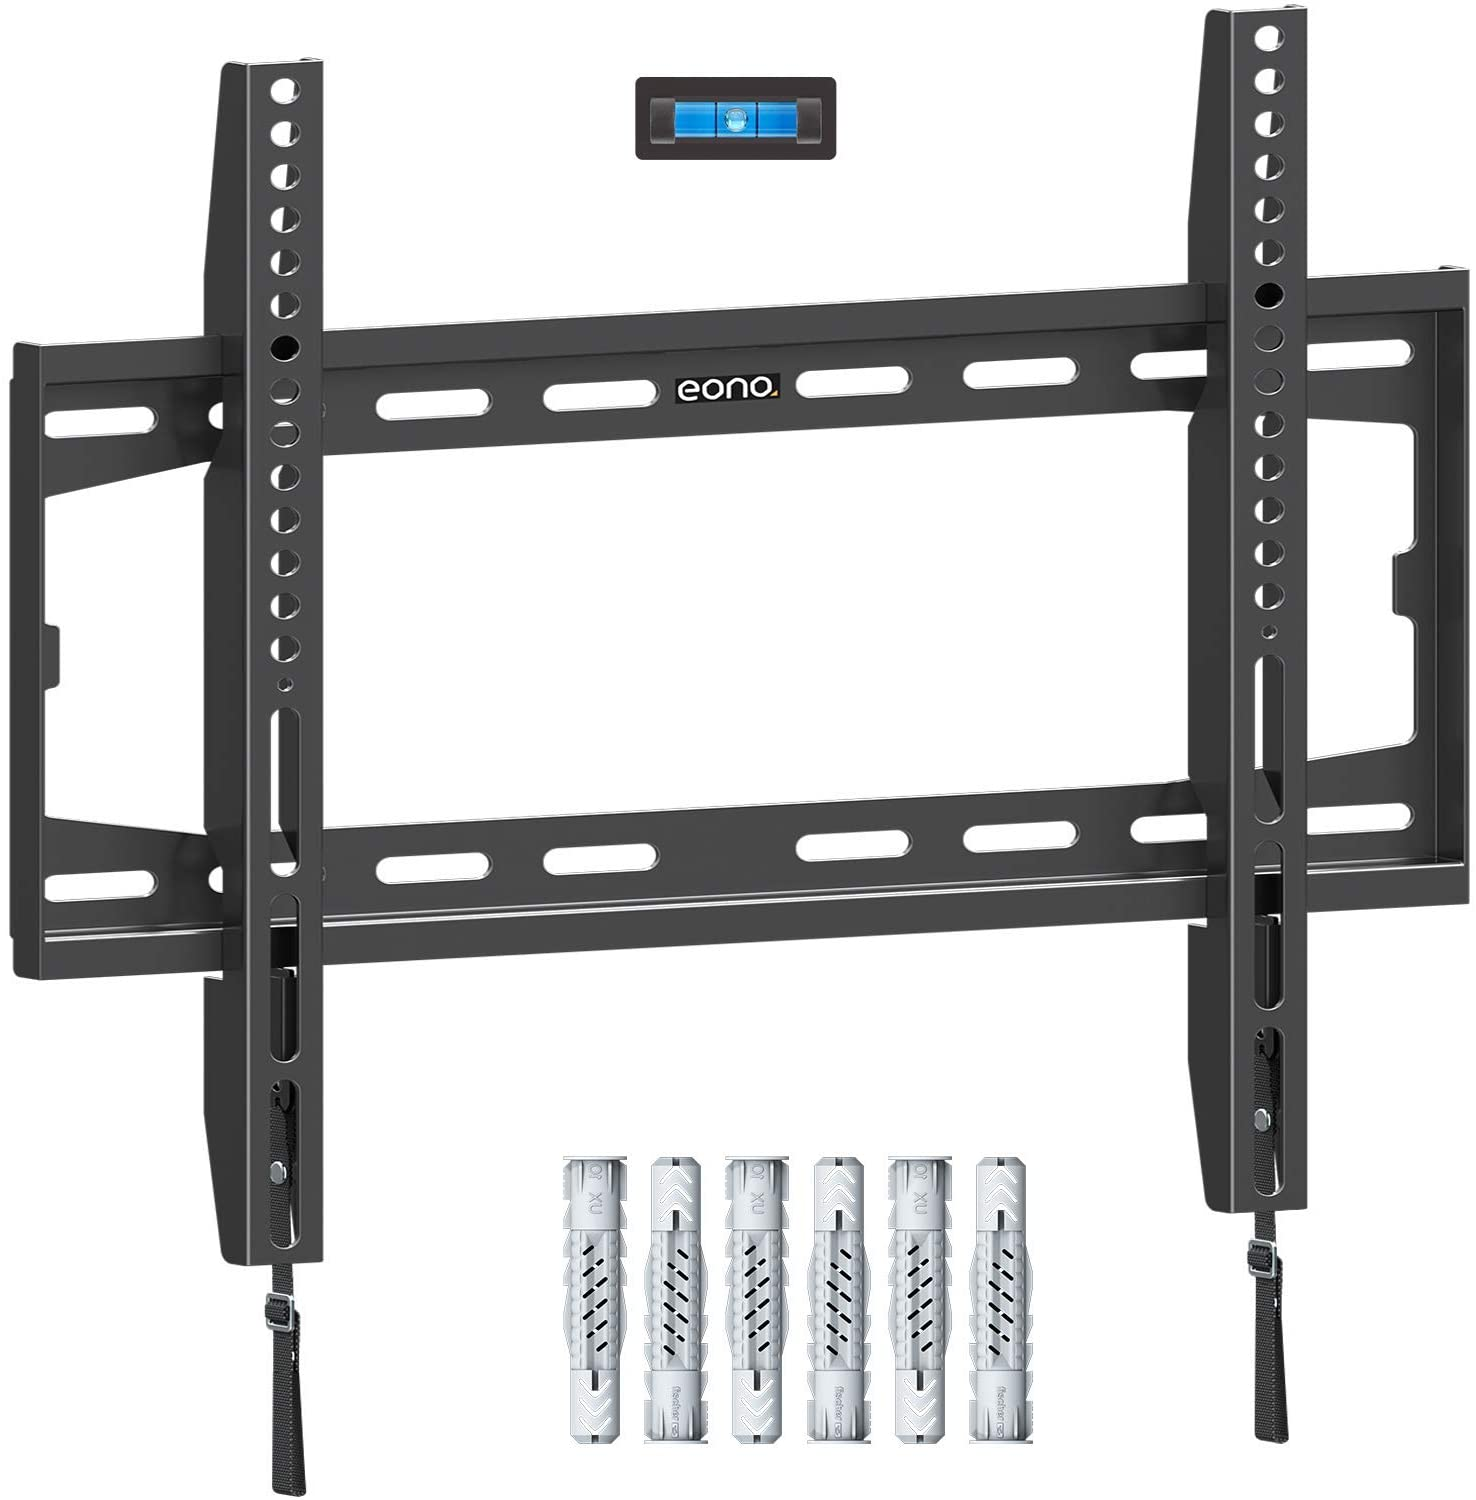 soporte-de-tv-de-pared-amazon-eono-pl2361-k.jpg